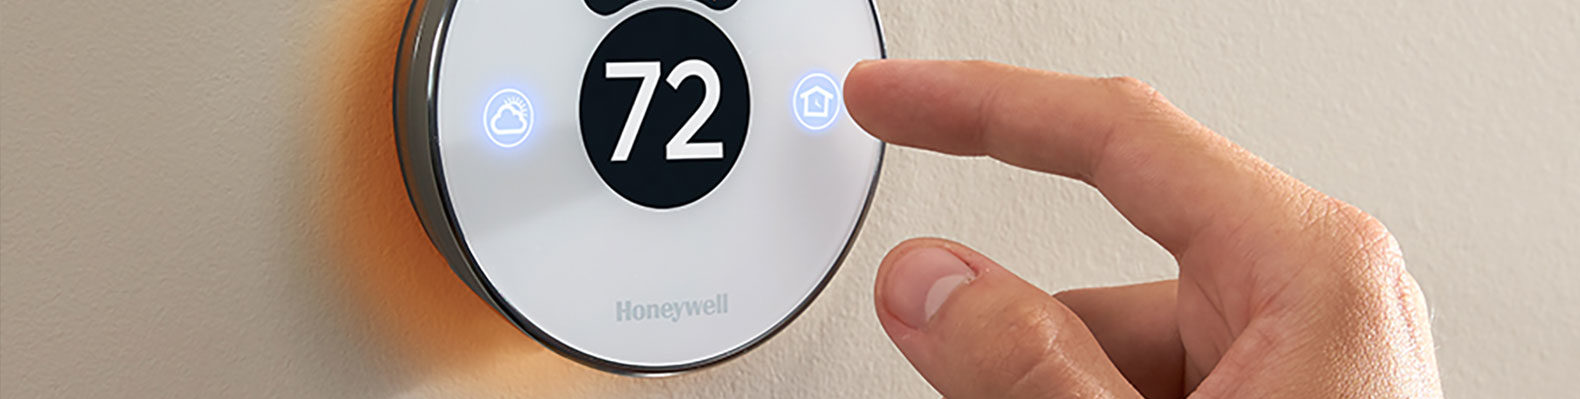 Product Review: Inhabitat tests out the Honeywell Lyric WiFi ...